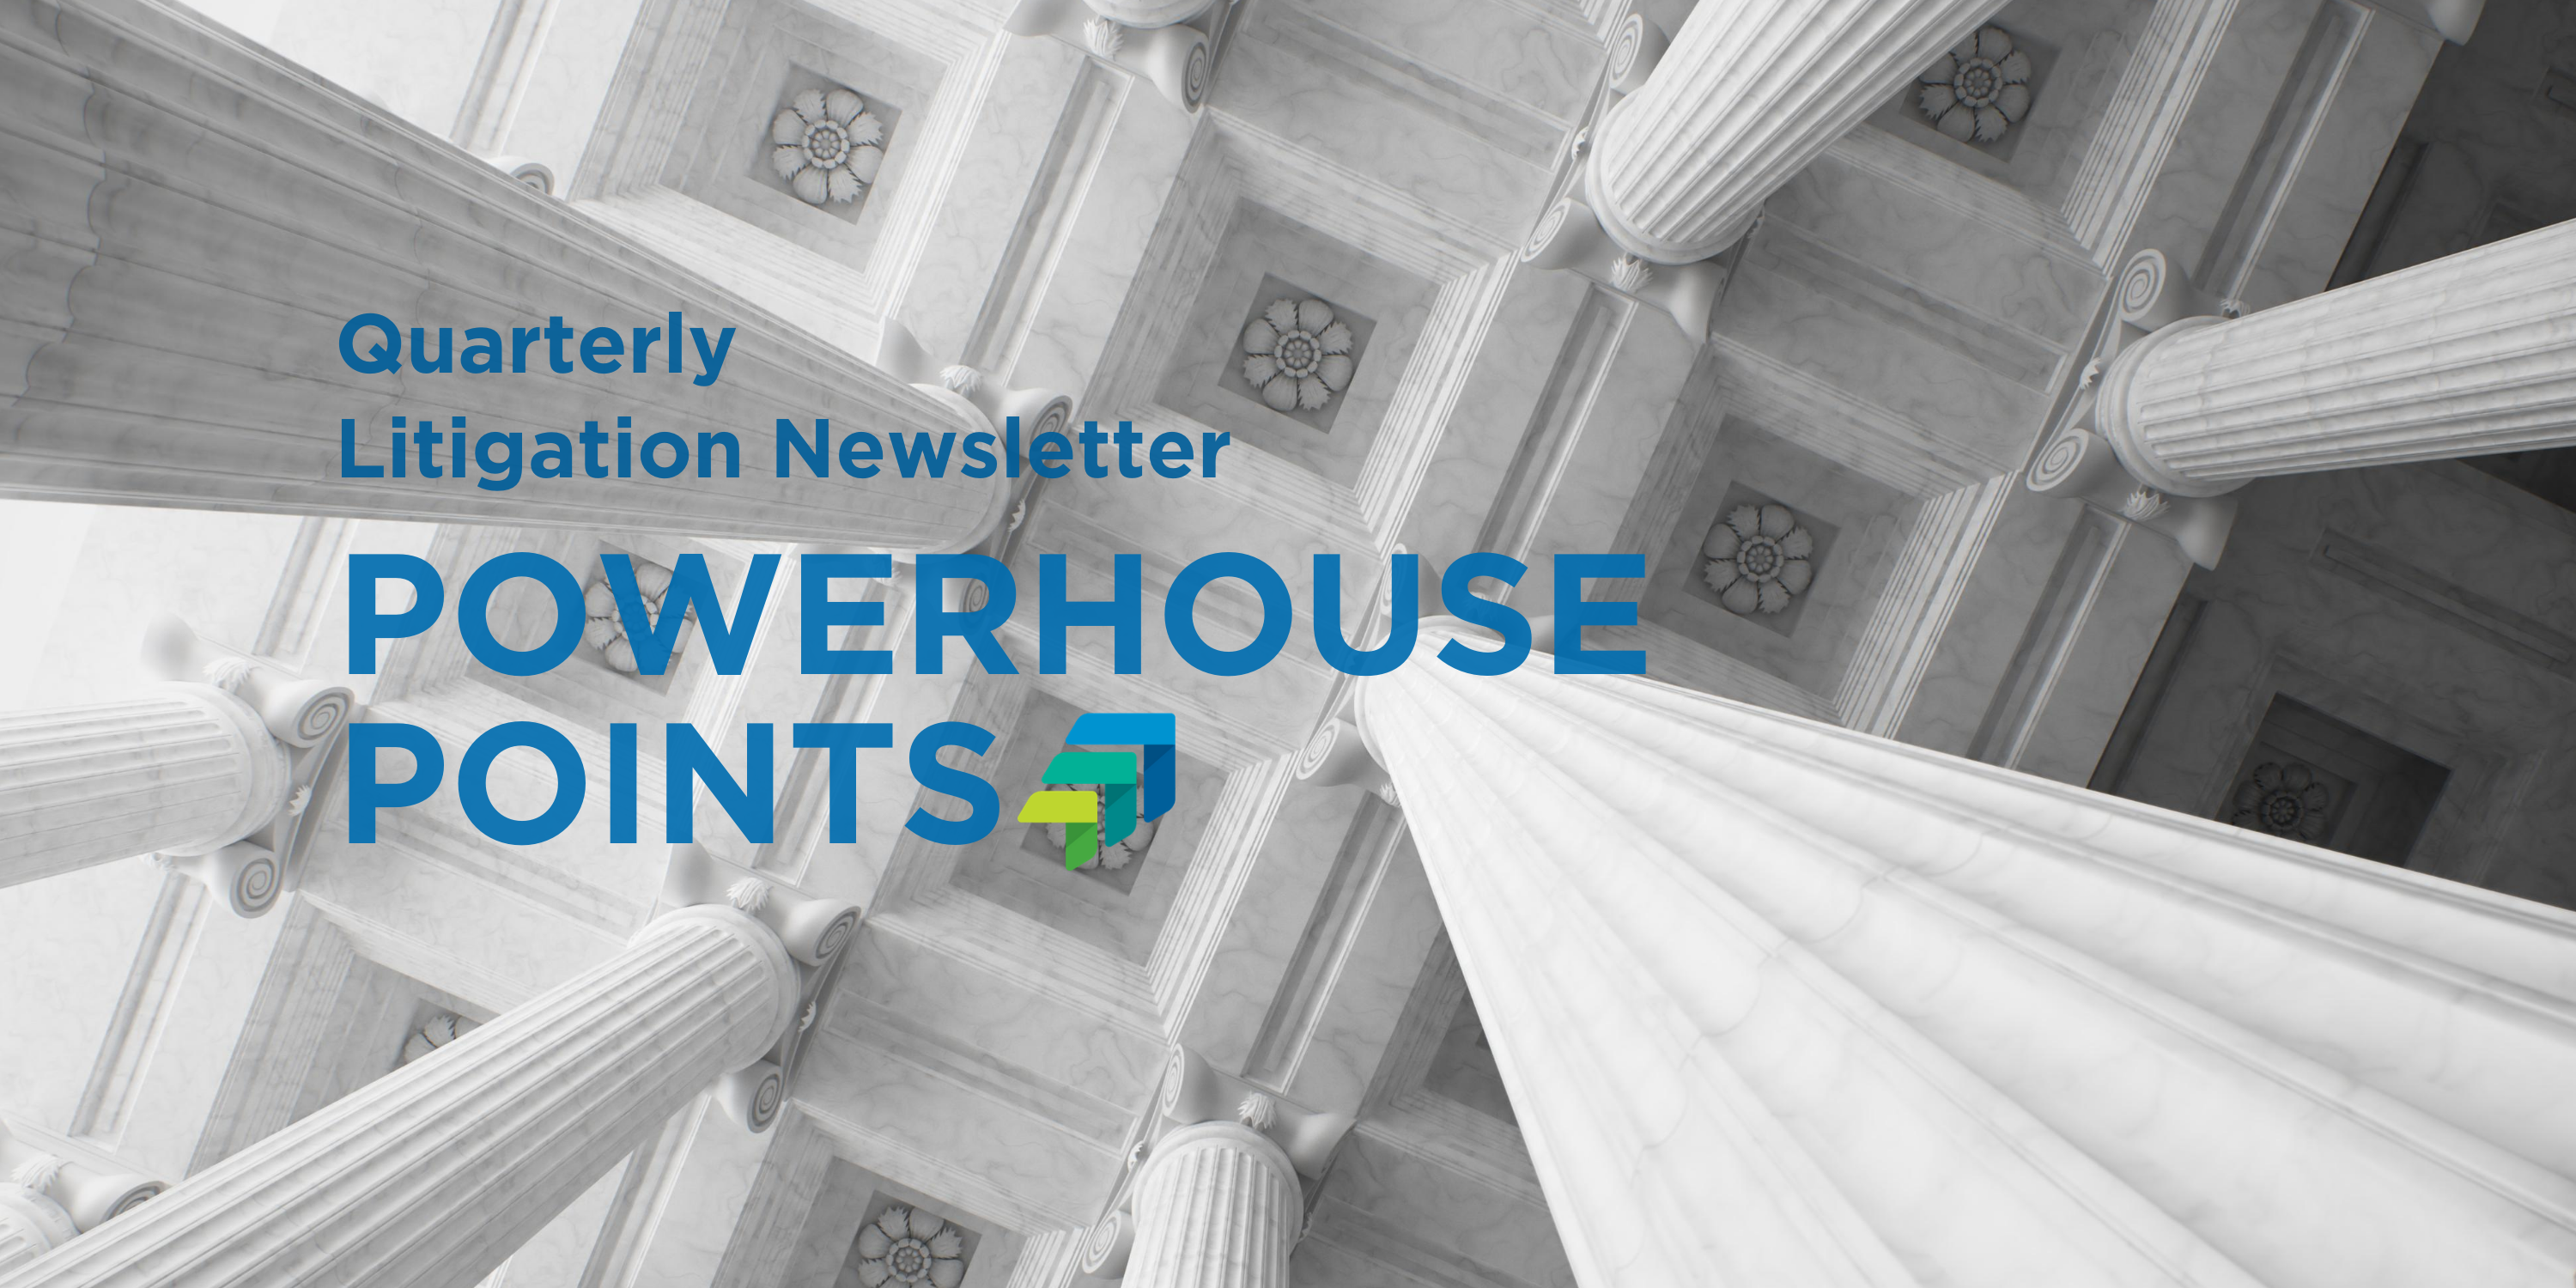 Article Image - Powerhouse Points: Quarterly Litigation Newsletter: Fall 2020